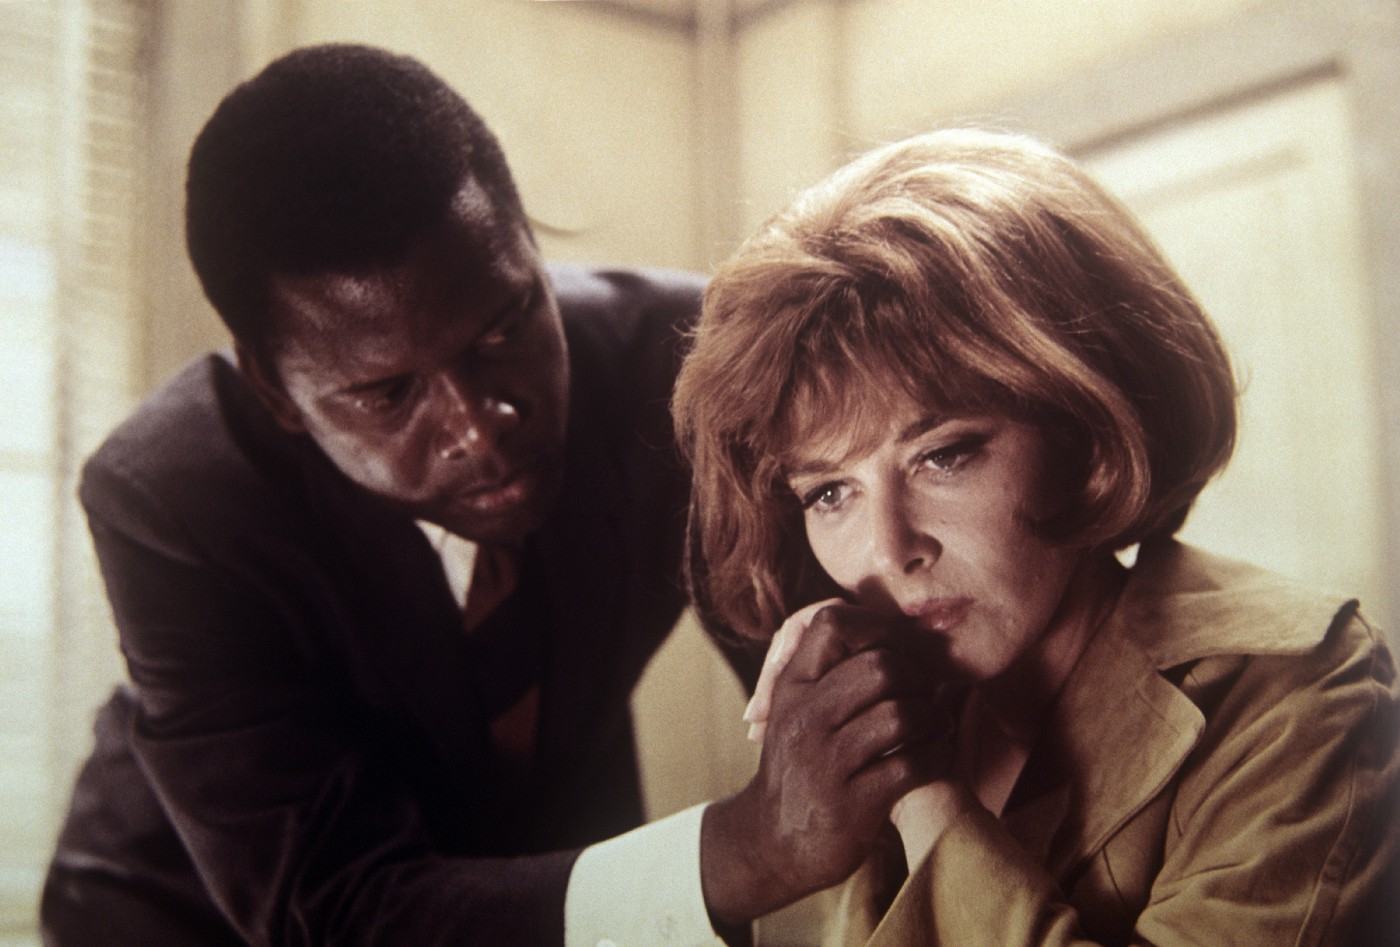 Sidney Poitier comforting a distraught Lee Grant in a scene of In the Heat of the Night